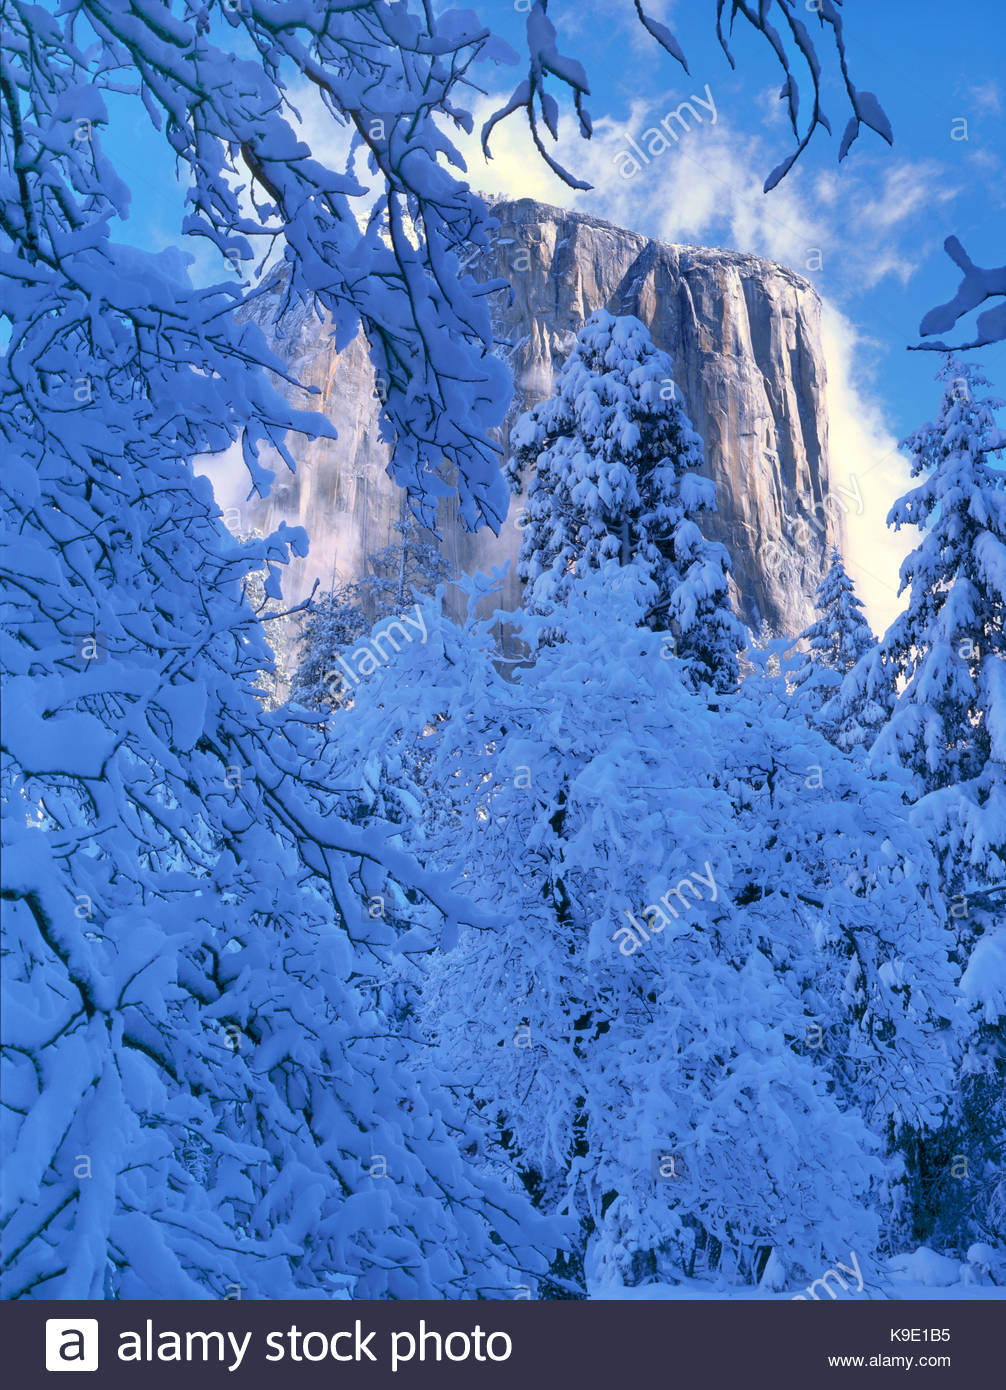 El Capitan après tempête, Yosemite National Park, Californie Photo Stock